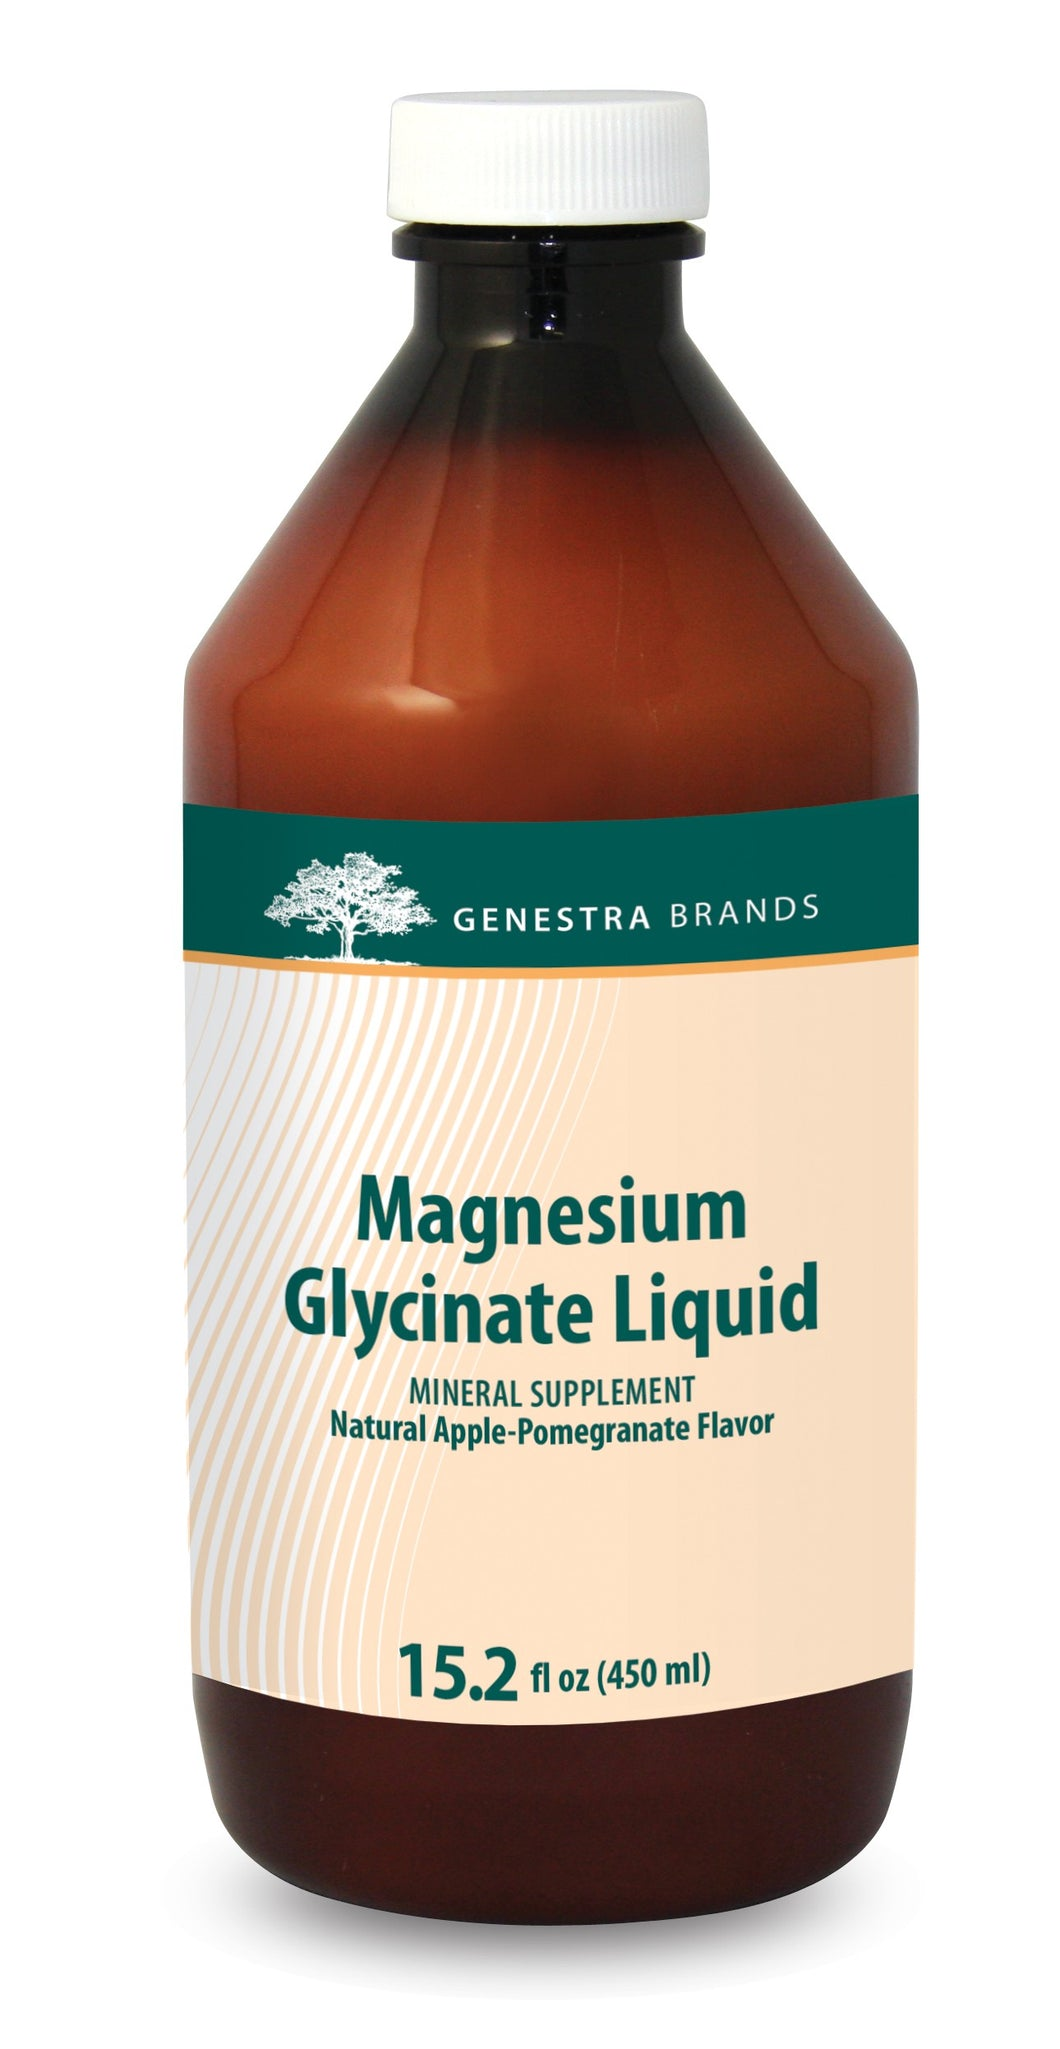 Genestra Magnesium Glycinate Liquid 450 ml